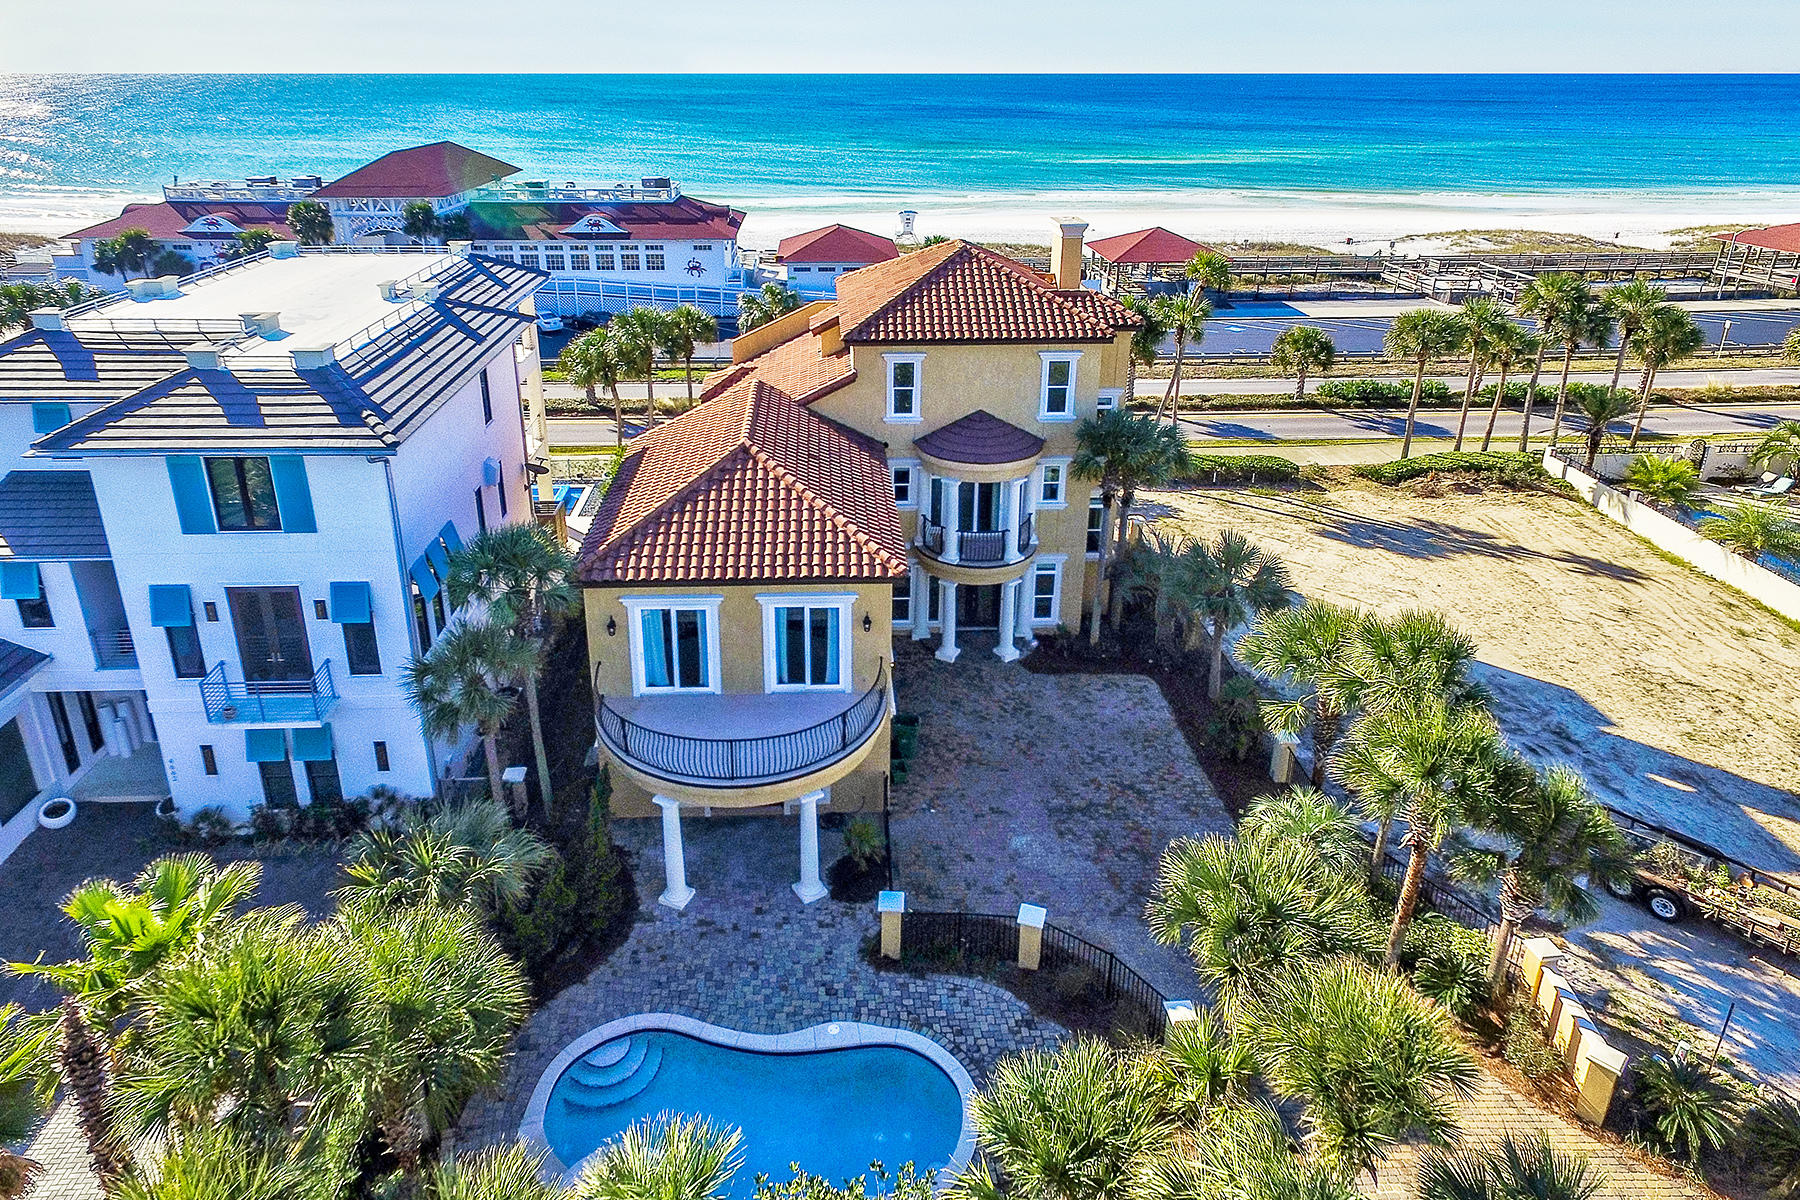 Casa Unifamiliar por un Venta en BEACH SIDE MANOR WITH UNOBSTRUCTED GULF VIEWS 4660 Destiny Way Destin, Florida, 32541 Estados Unidos